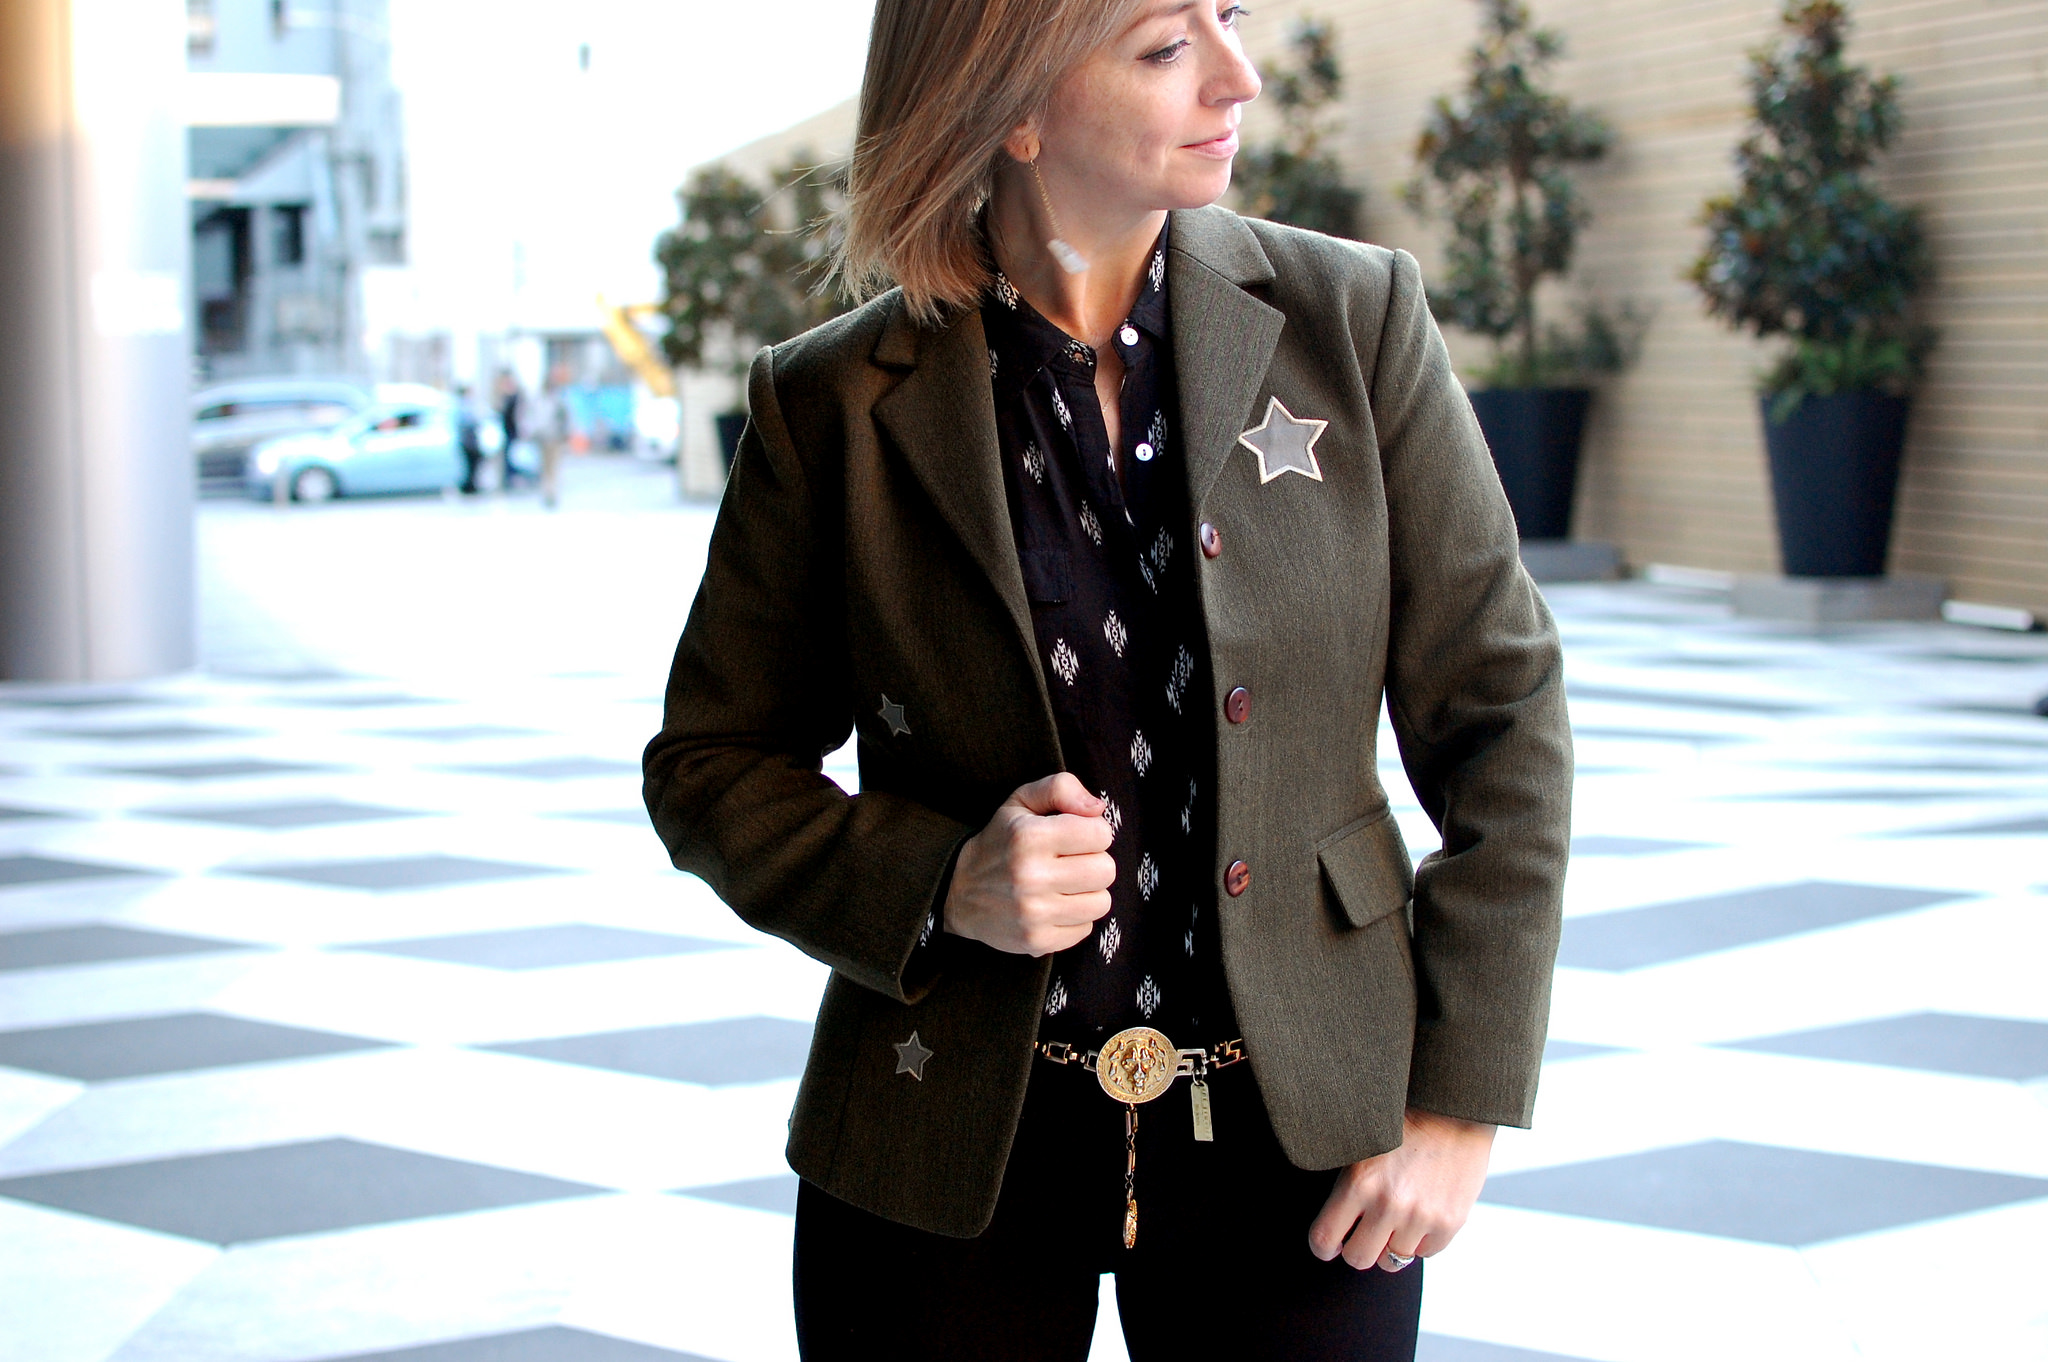 thrifted olive star blazer daily outfit blog whatiwore2day ootd